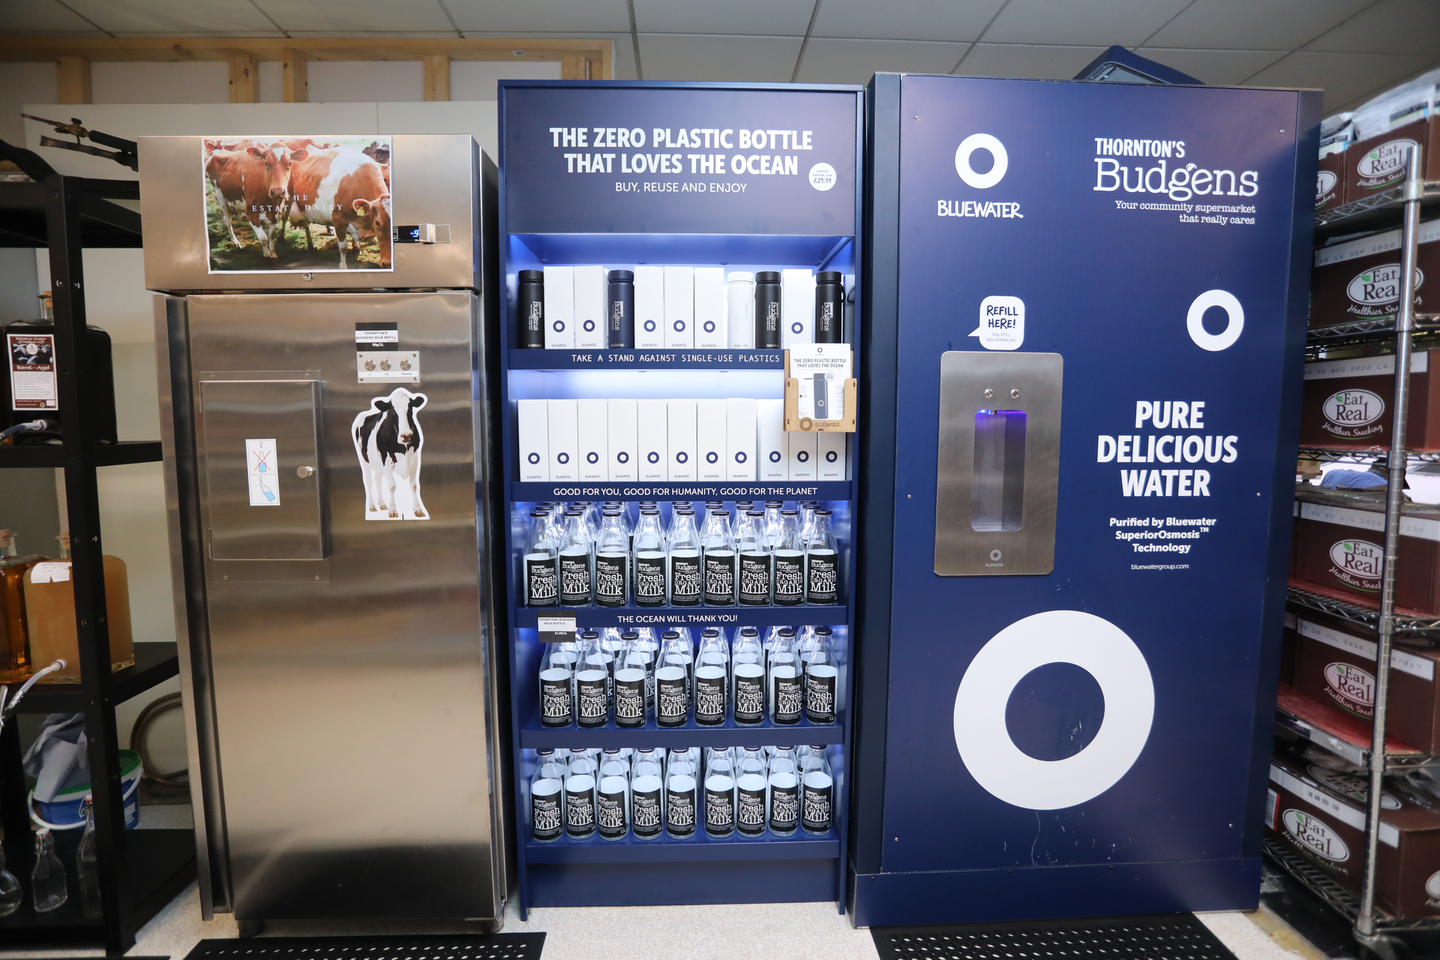 At Thornton's Budgens, reducing plastic means having customers buy glass bottles and fill water from a tap.